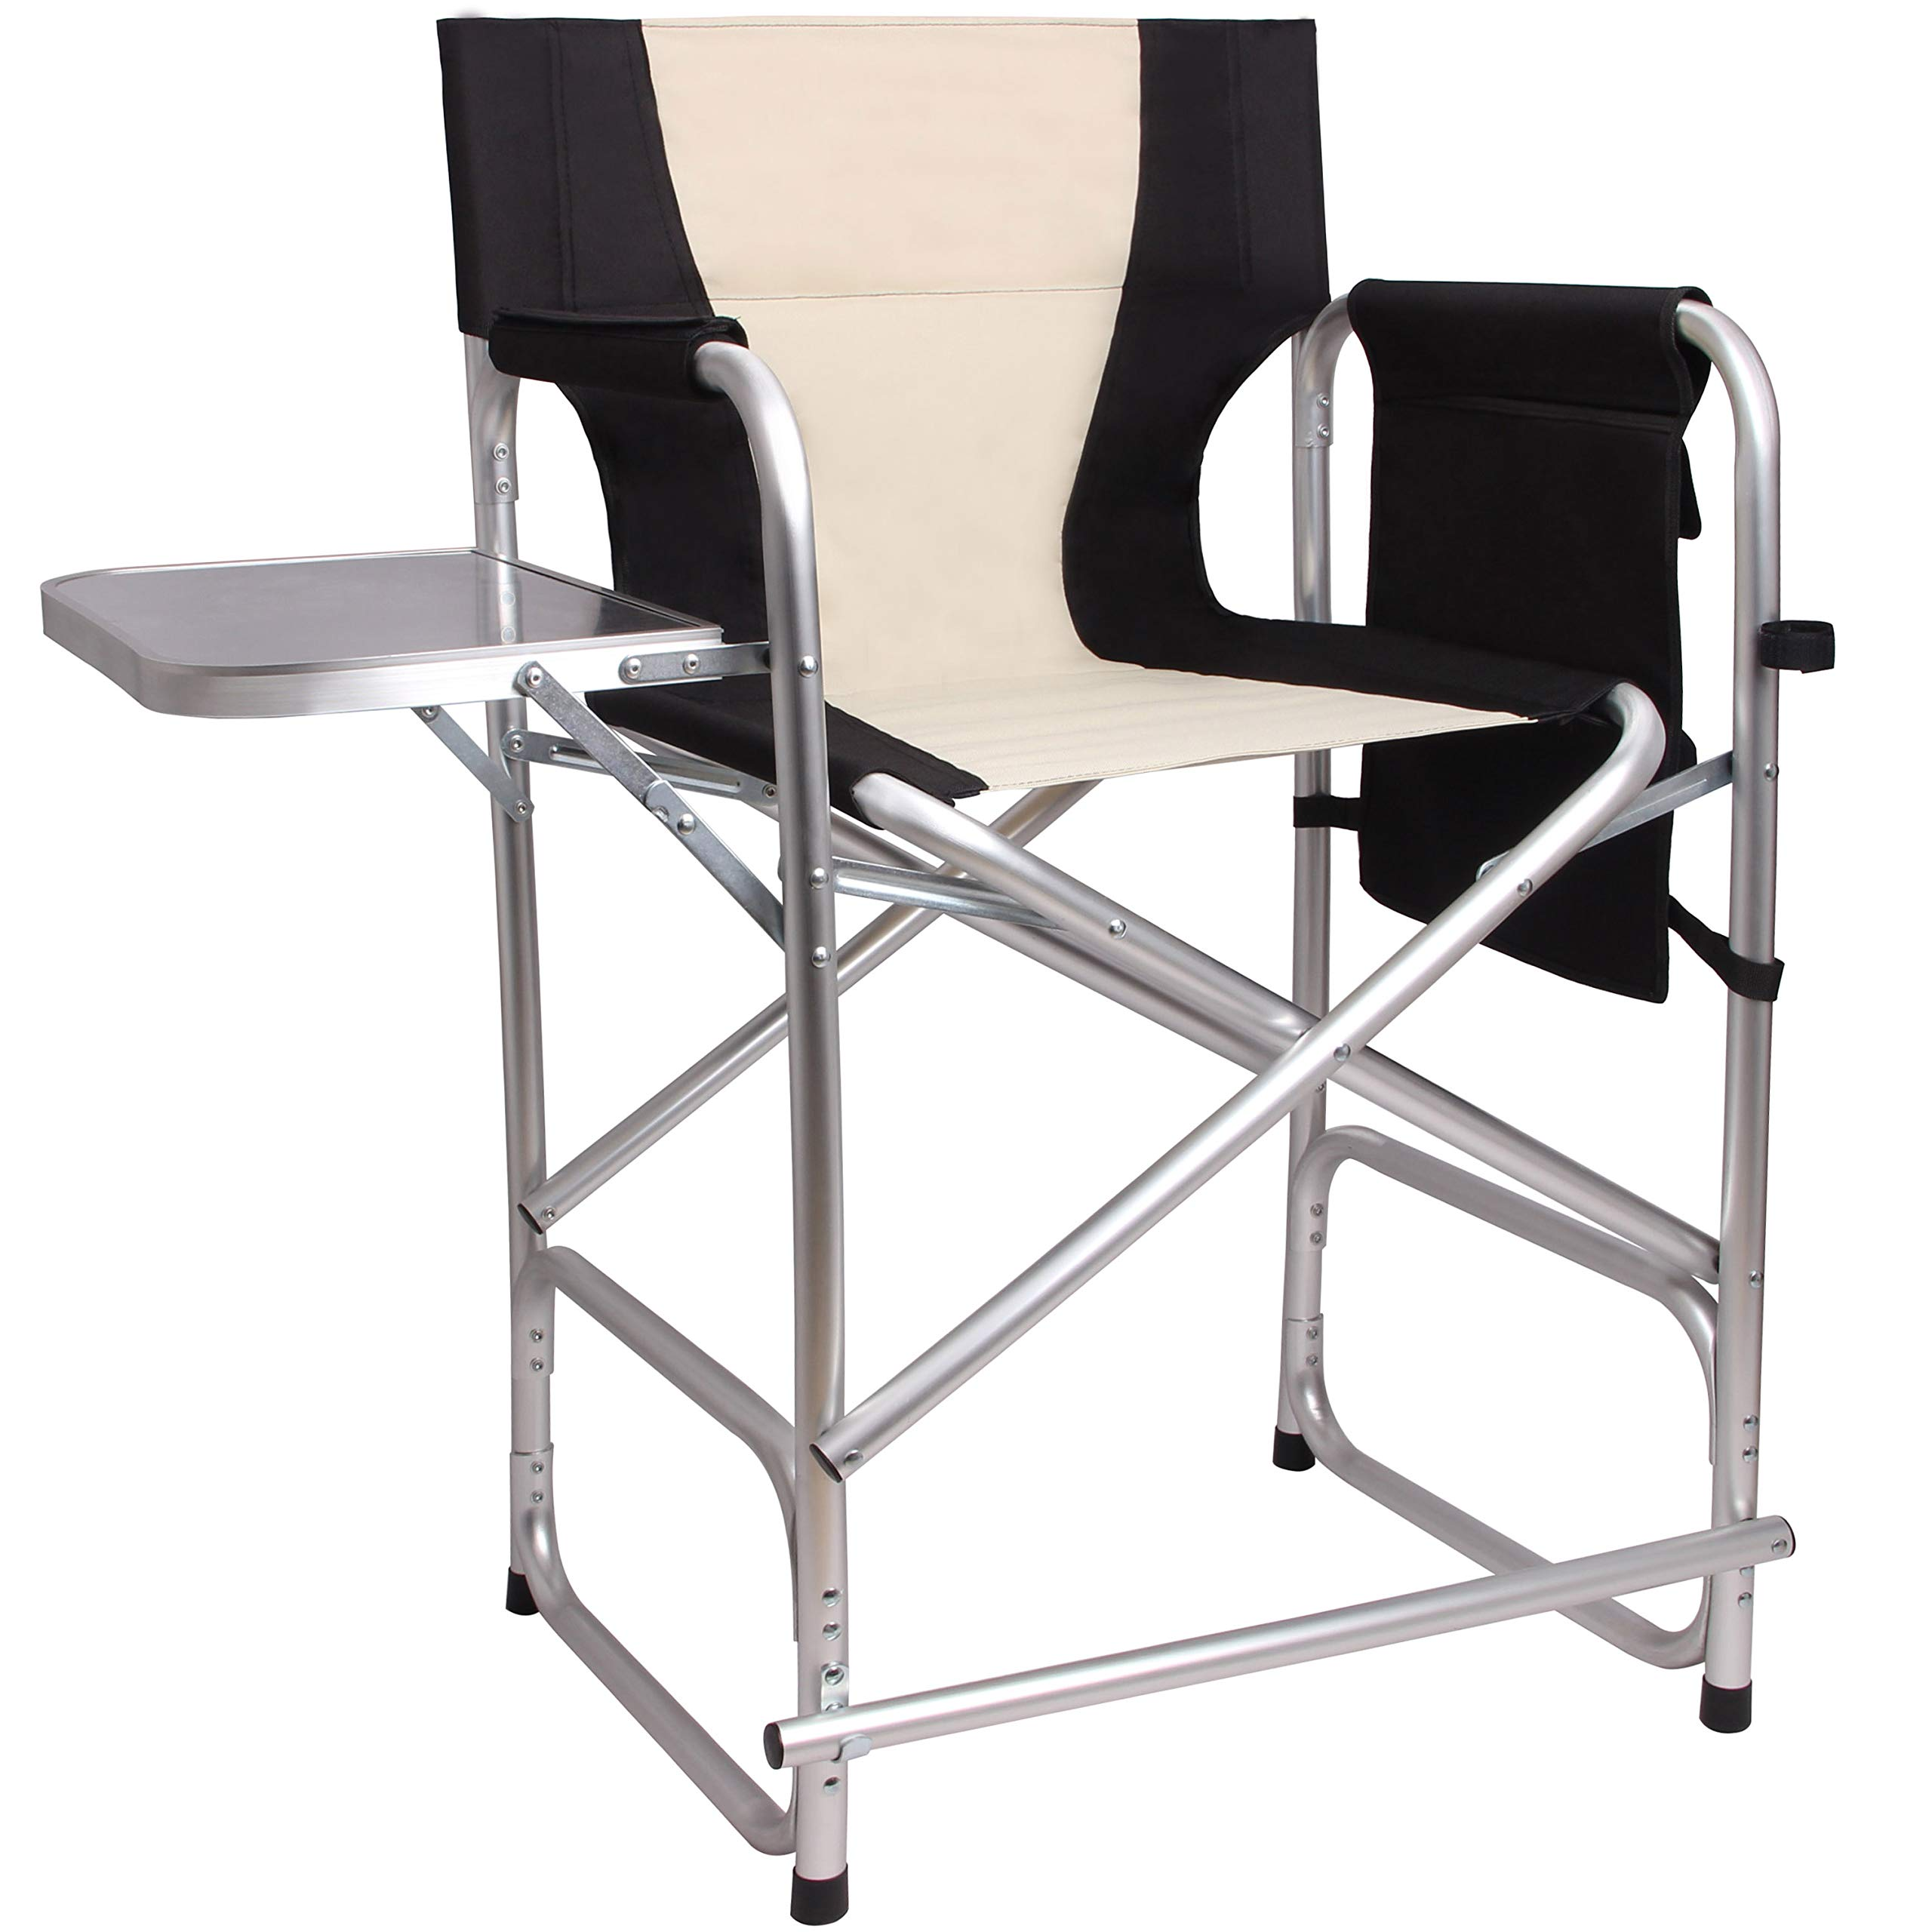 Foldable Directors Chair Portable Camping Chair - Lightweight Full Aluminum Frame Makeup Artist Chair Heavy Duty with Armrest Side Table Storage Bag Footrest 300 lbs Supports by AGOOL